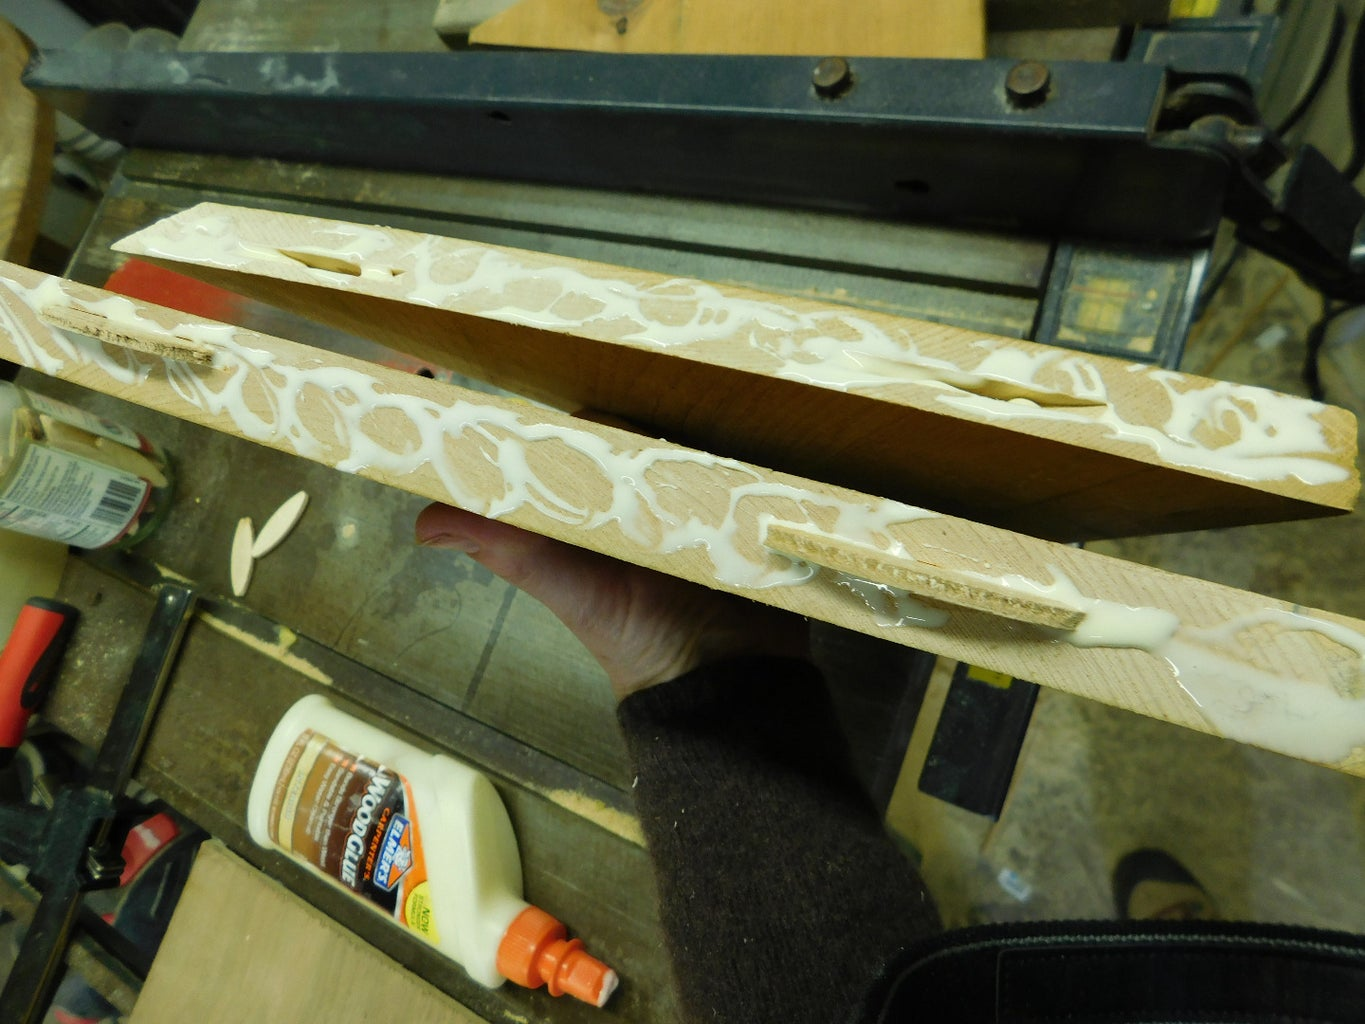 Biscuit Joinery for the Hex Roof